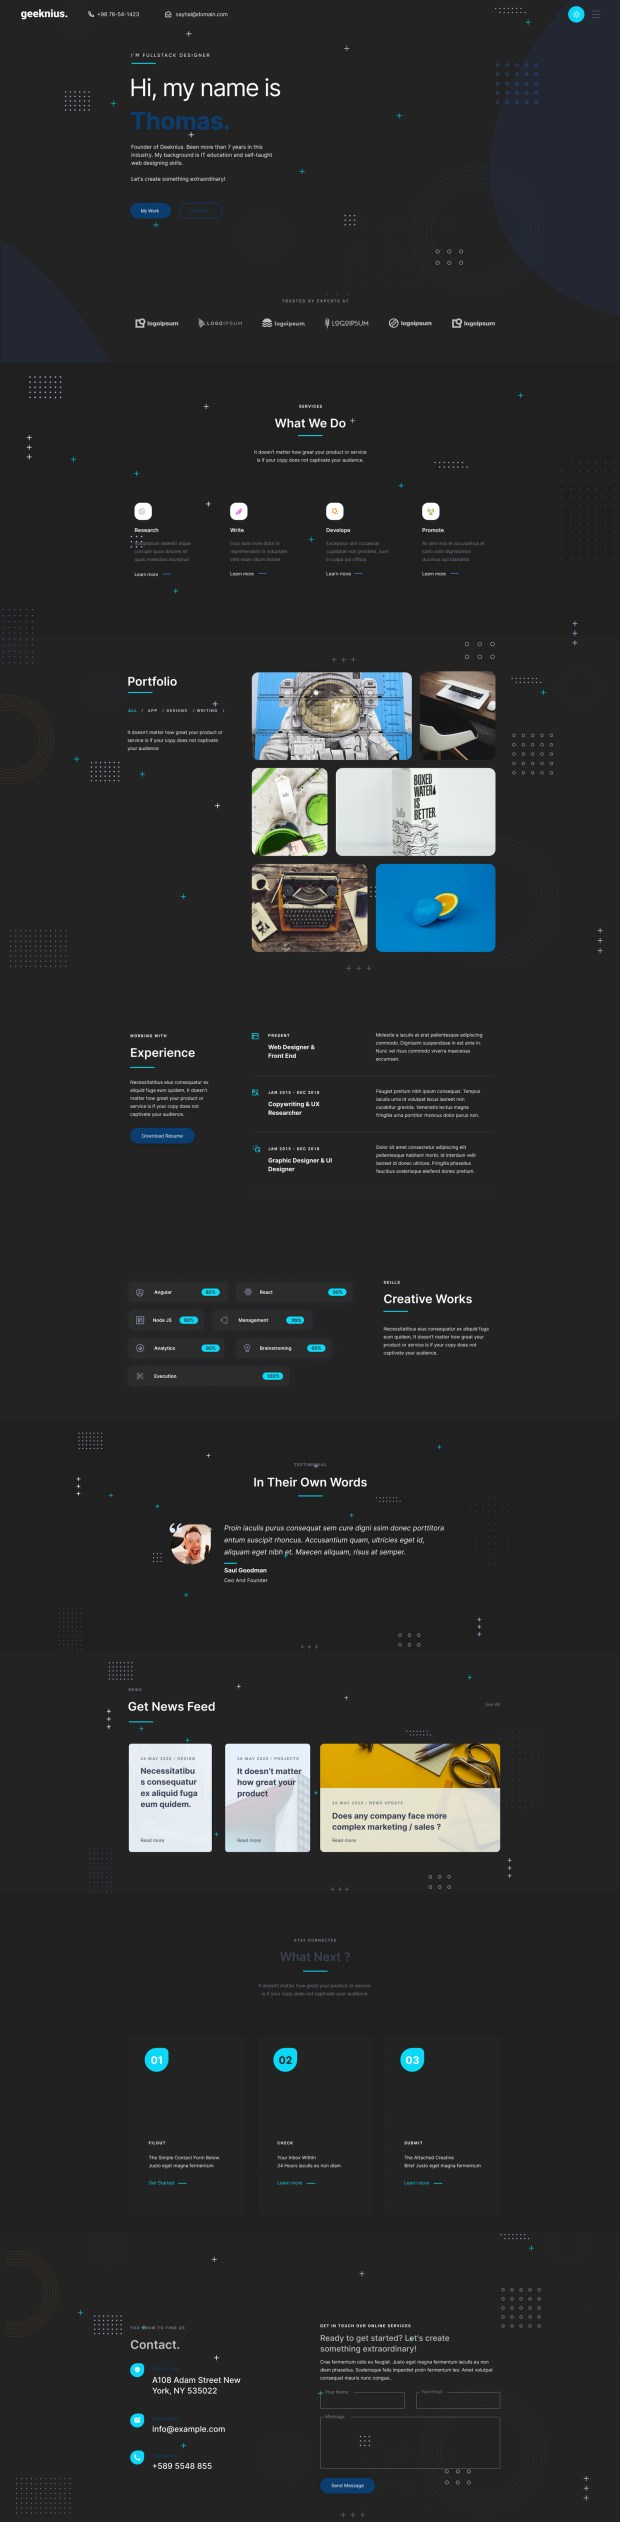 Geeknius — Creative Resume Website Template for Figma - Dark